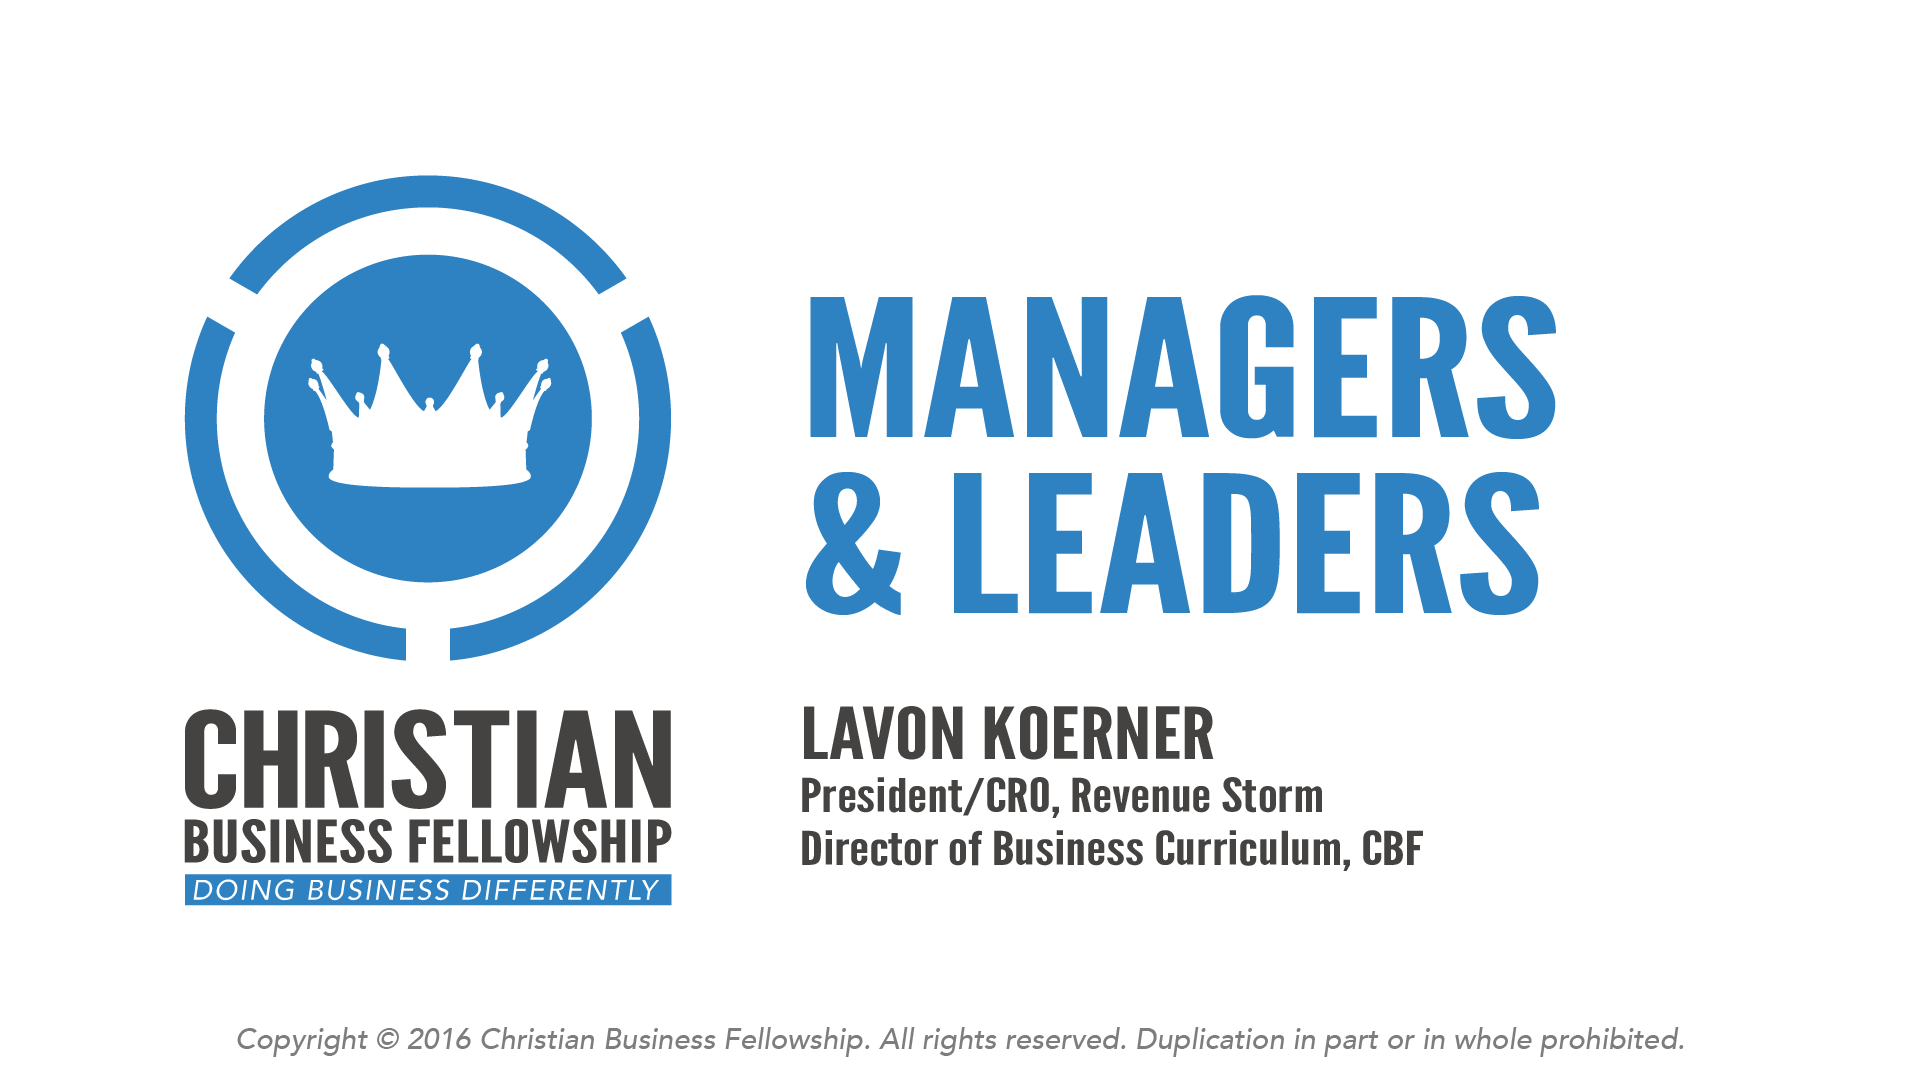 christian management and leadership Annual tax law and compliance: our most popular event of the year the latest information on tax, compensation, employment law and operational compliance changes, etc, you need to know to prepare your 2016 end-of-the-year tax filings and guide your ministries in 2017.